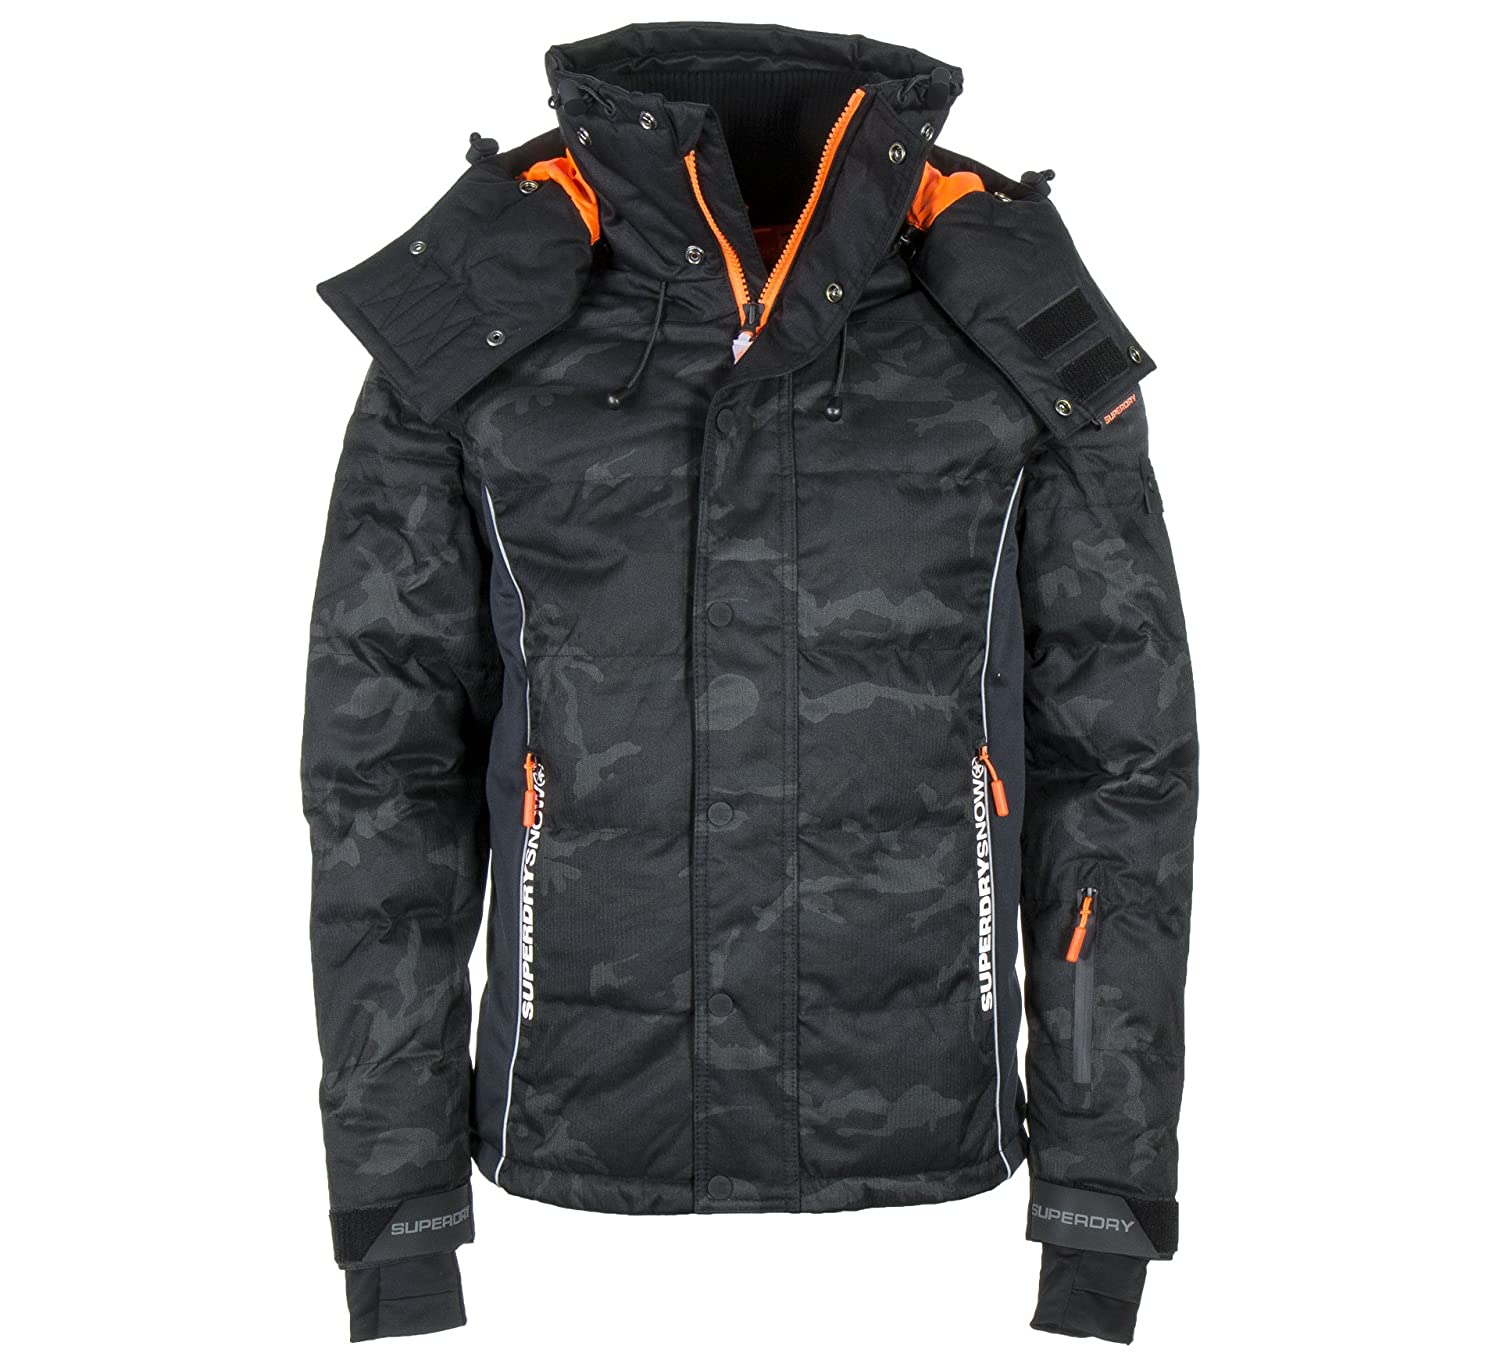 on sale b126d 00efd Superdry Snow Puffer Jacket: Amazon.co.uk: Sports & Outdoors